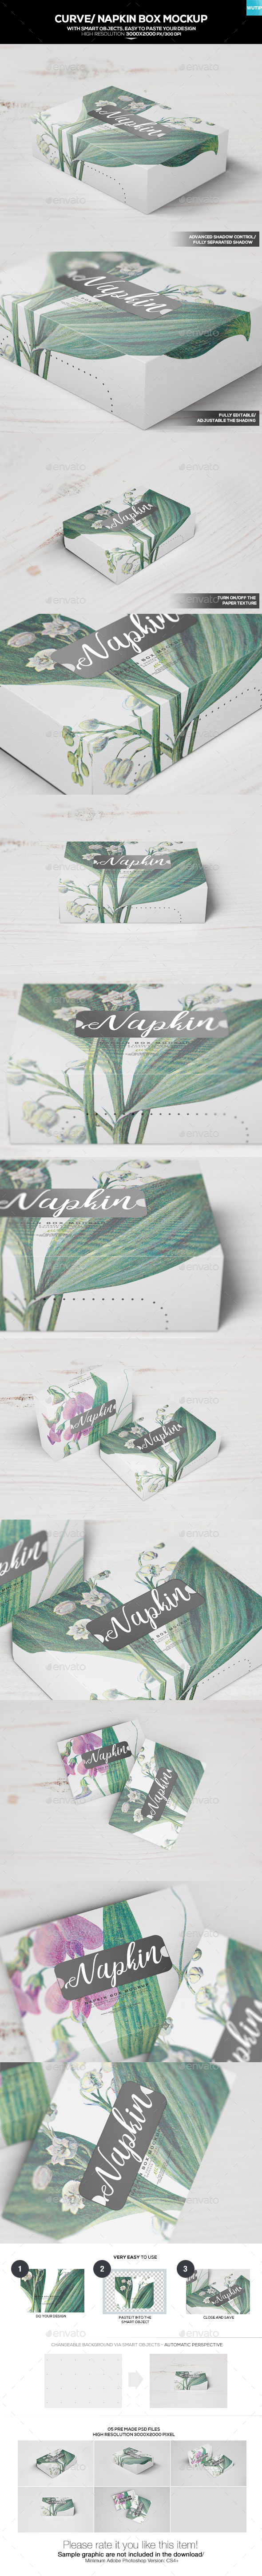 Curve/ Napkin Box Mockup - Miscellaneous Packaging